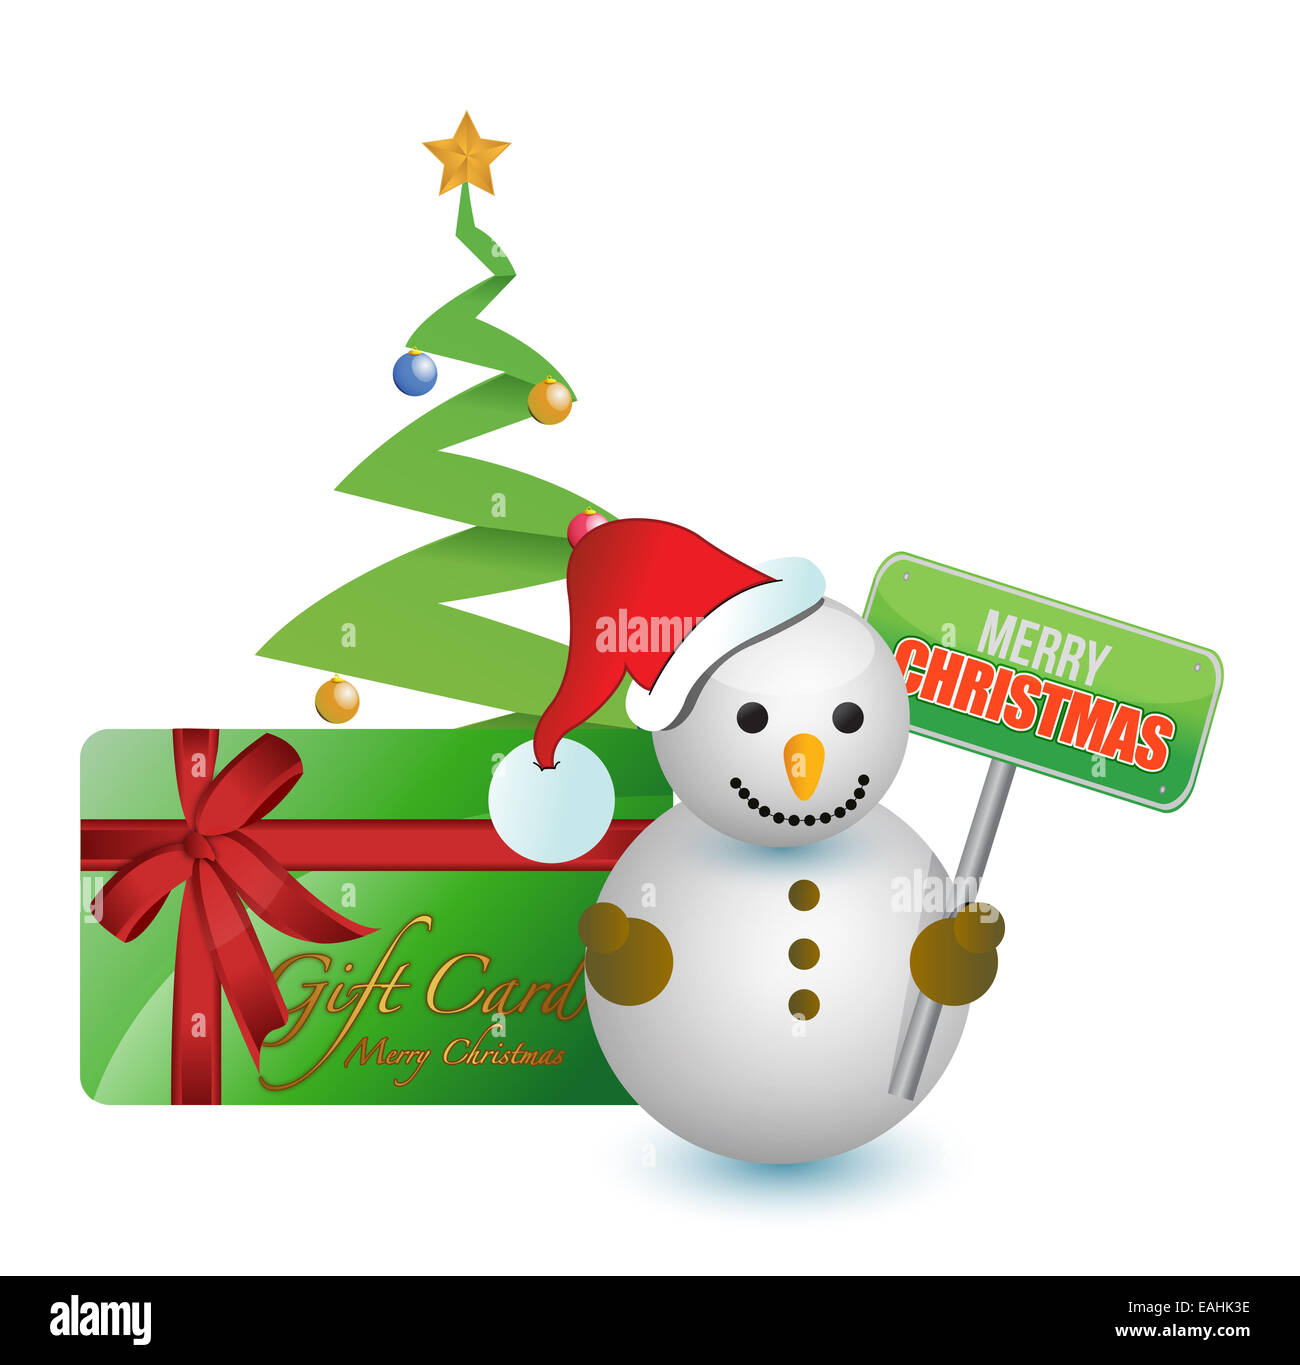 Snowman, tree and merry Christmas gift card Stock Photo: 75376210 ...